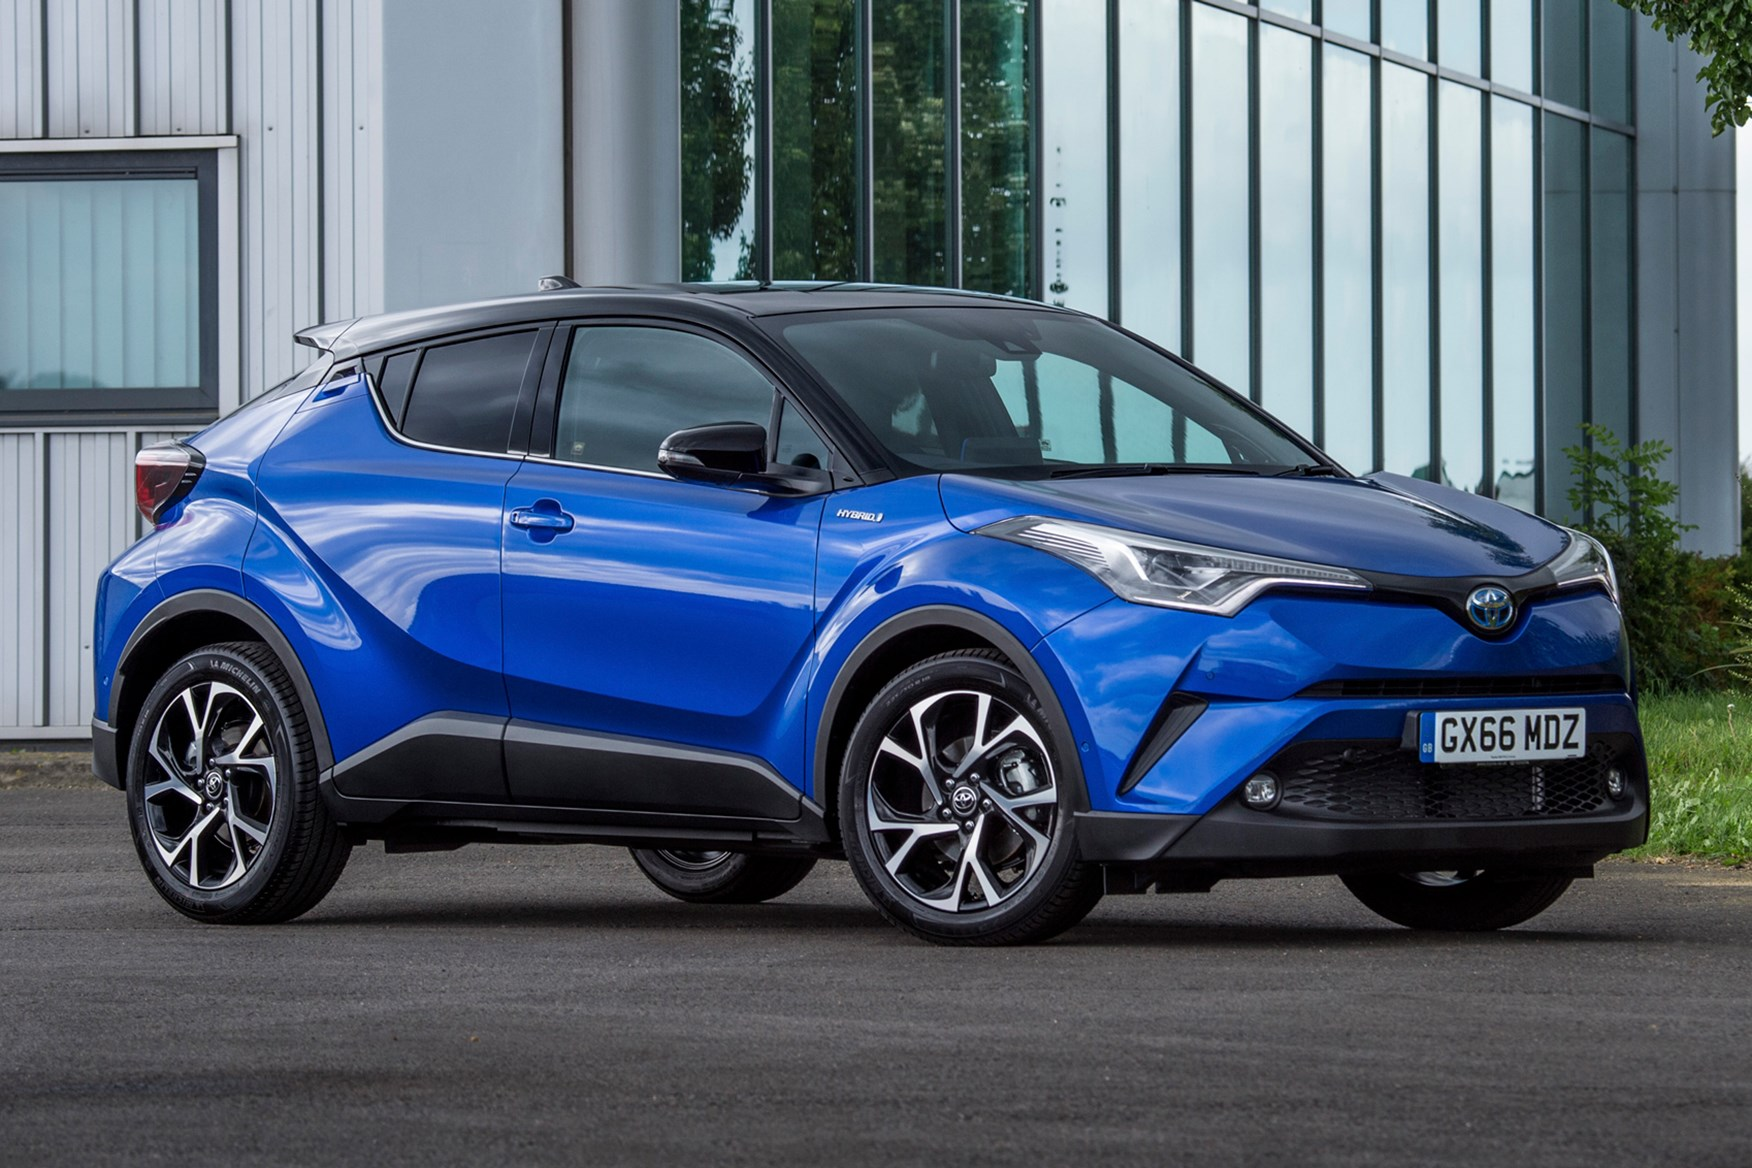 Hybrid Cars 2017 Uk Four Out Of Ten Toyota Cars In The Uk Are Now Hybrids